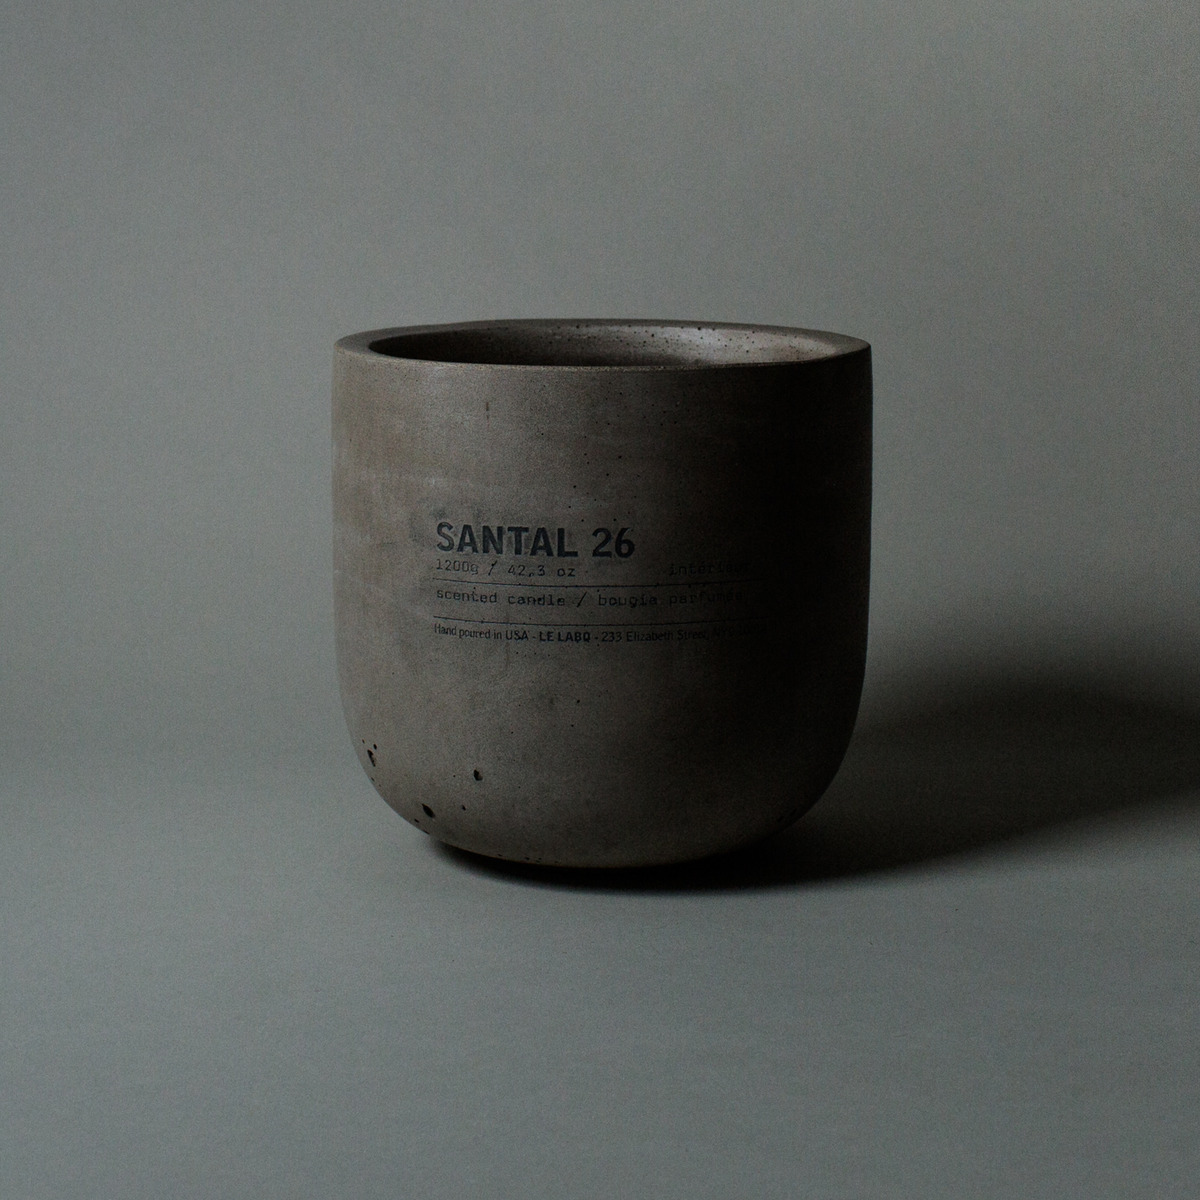 Don't let this photo fool you, cult fragrance co Le Labo's Santal 26 scented candle (vegan/ cruelty-free) is $450 of massive cement-housed candle! This one will light your fire for up to 150+ hours and comes packaged in the coolest wooden crate. SANTAL 26 concrete candle, $450 @lelabofragrances.com